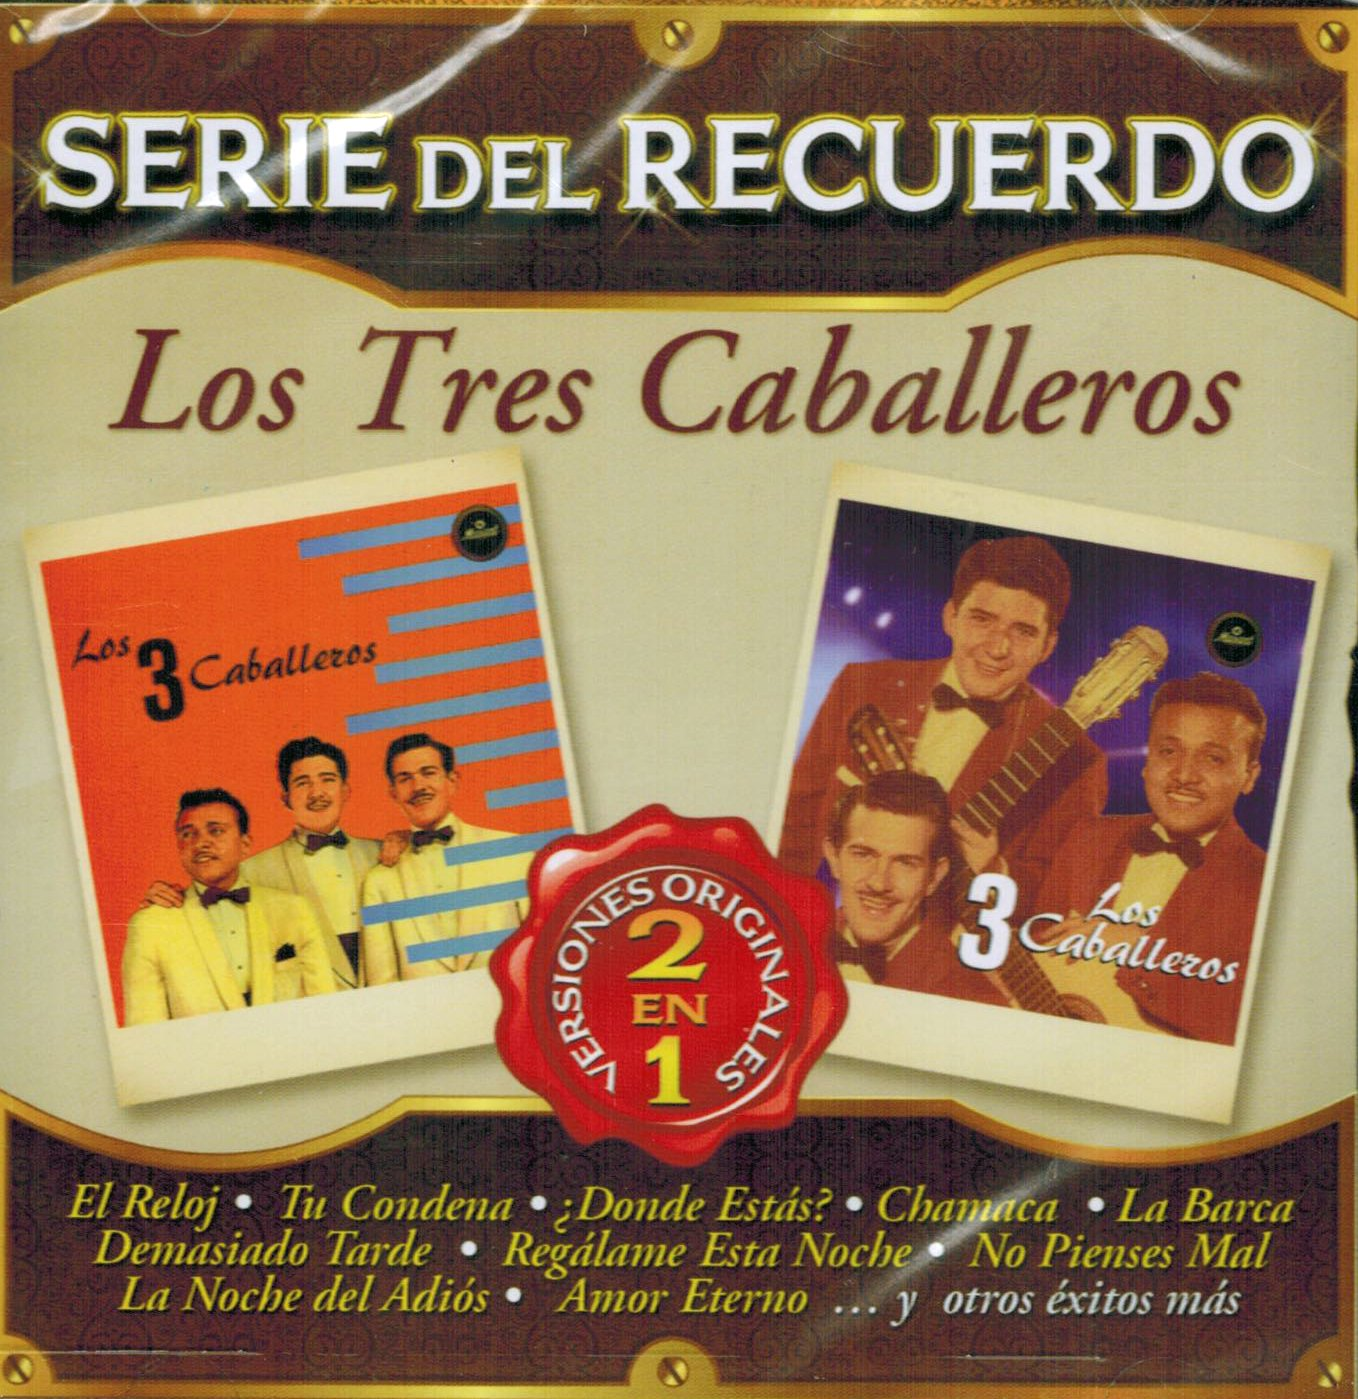 Los Tres Caballeros (Serie del Recuerdo 2 en 1 Sony-442621) CD, Limited Collectors Edition, Import, Original recording remastered